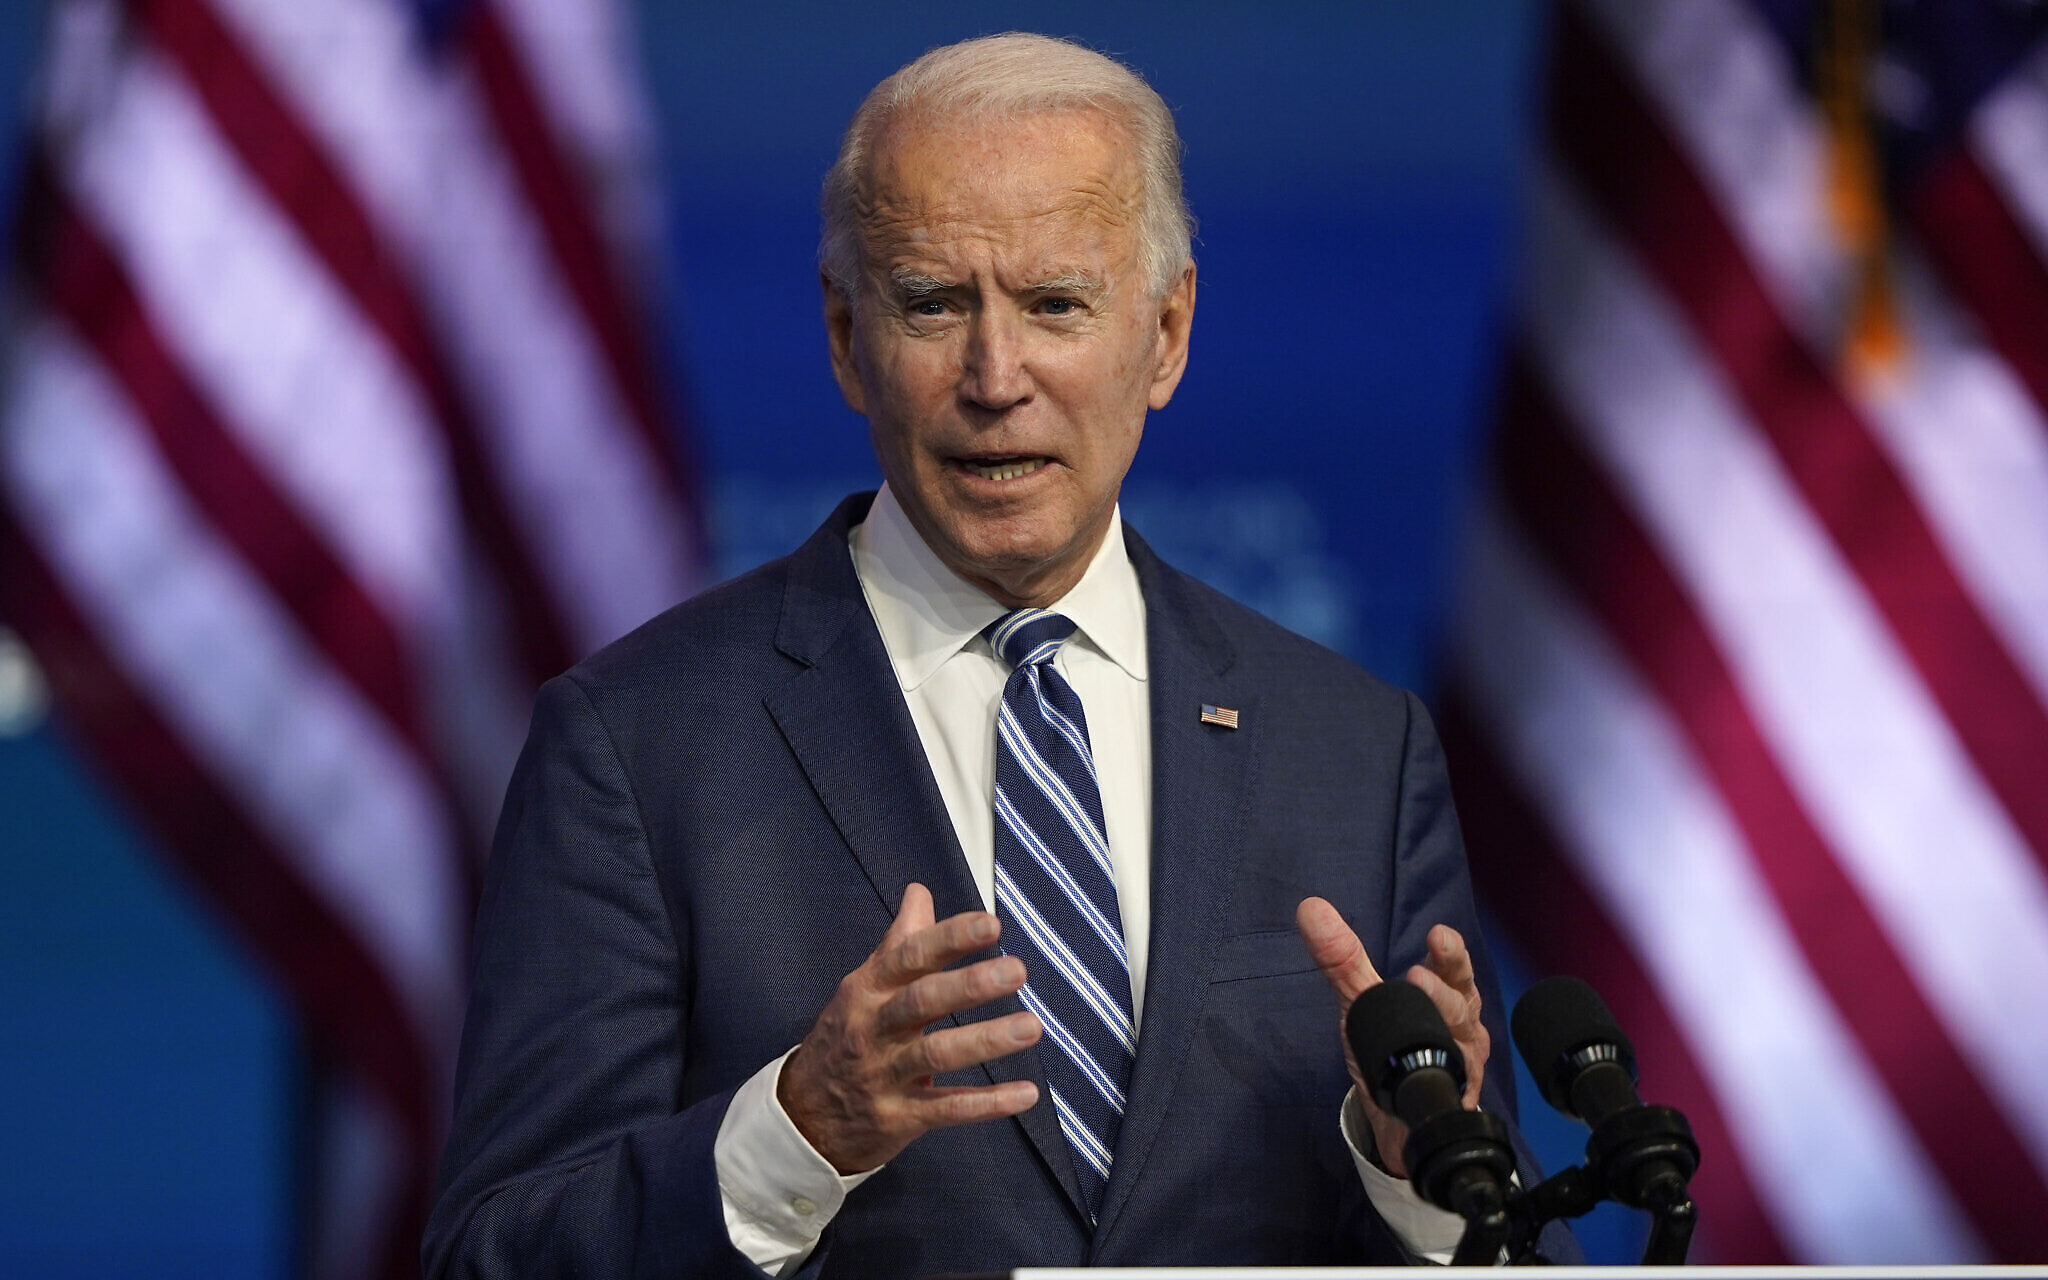 Biden brands Trump's refusal to concede an 'embarrassment'